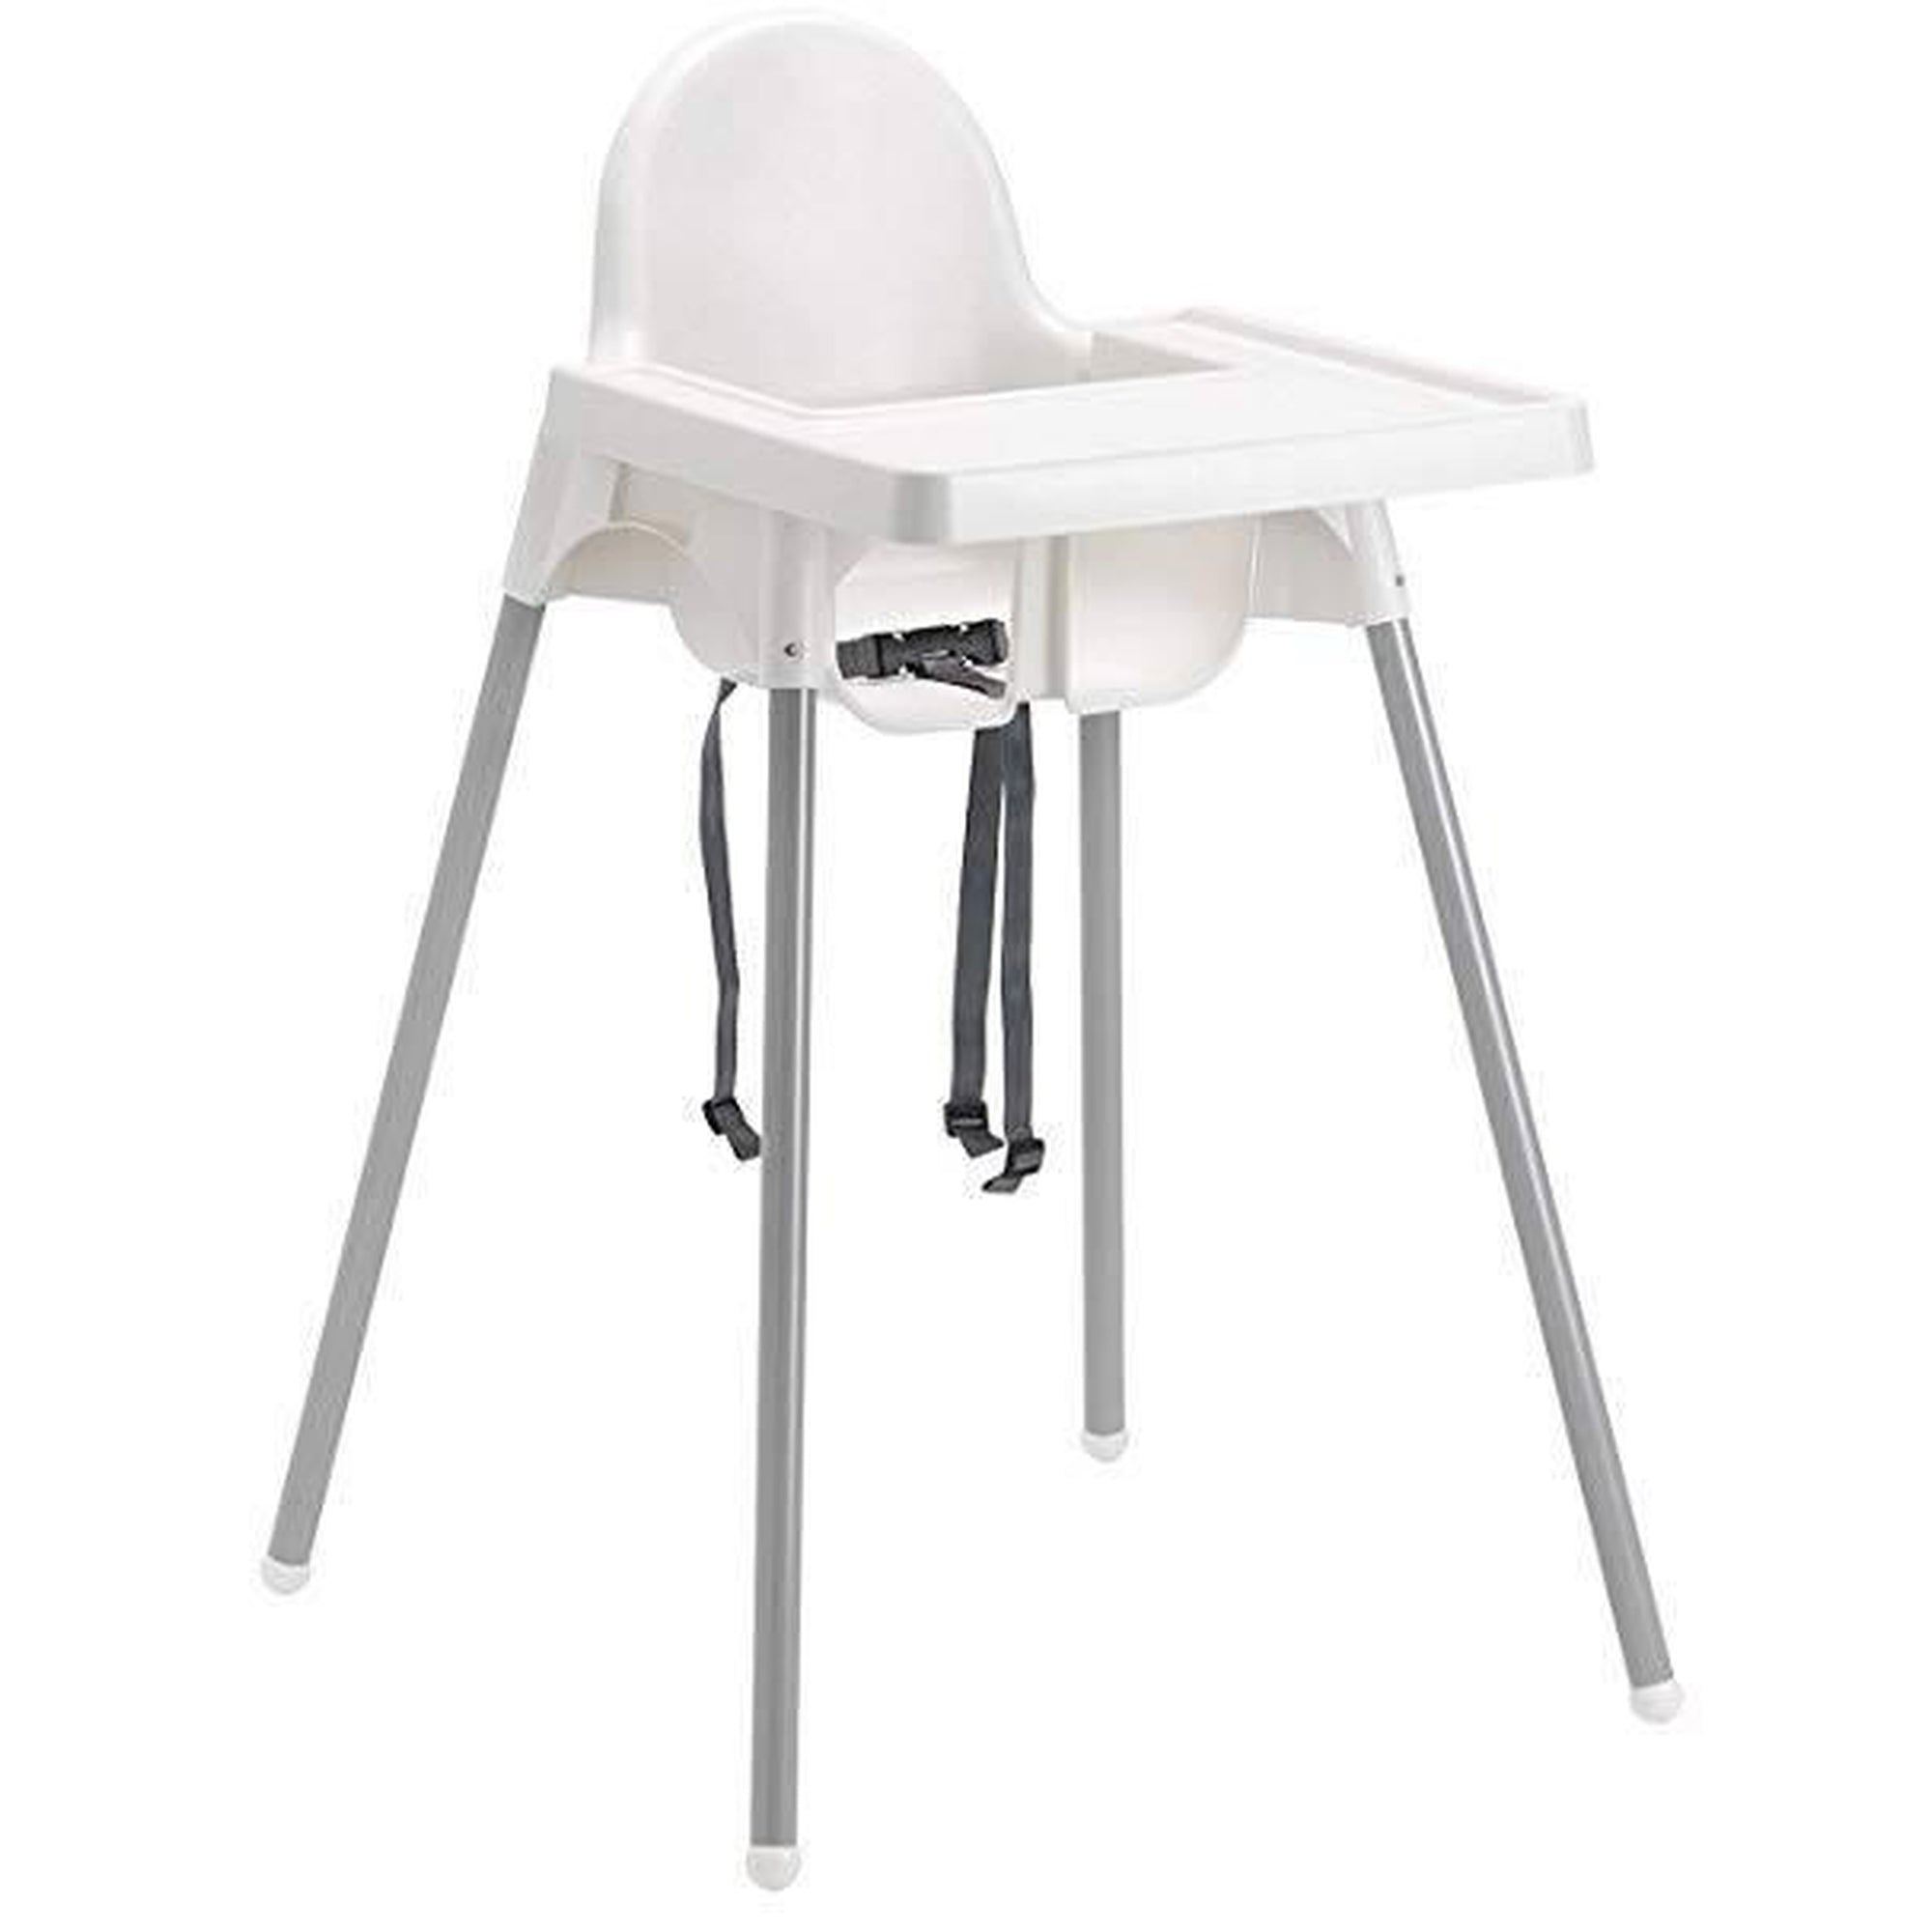 Antilop Highchair with Tray-High Chair-Mother and Baby Shop Kenya's #1 Online Baby Shop